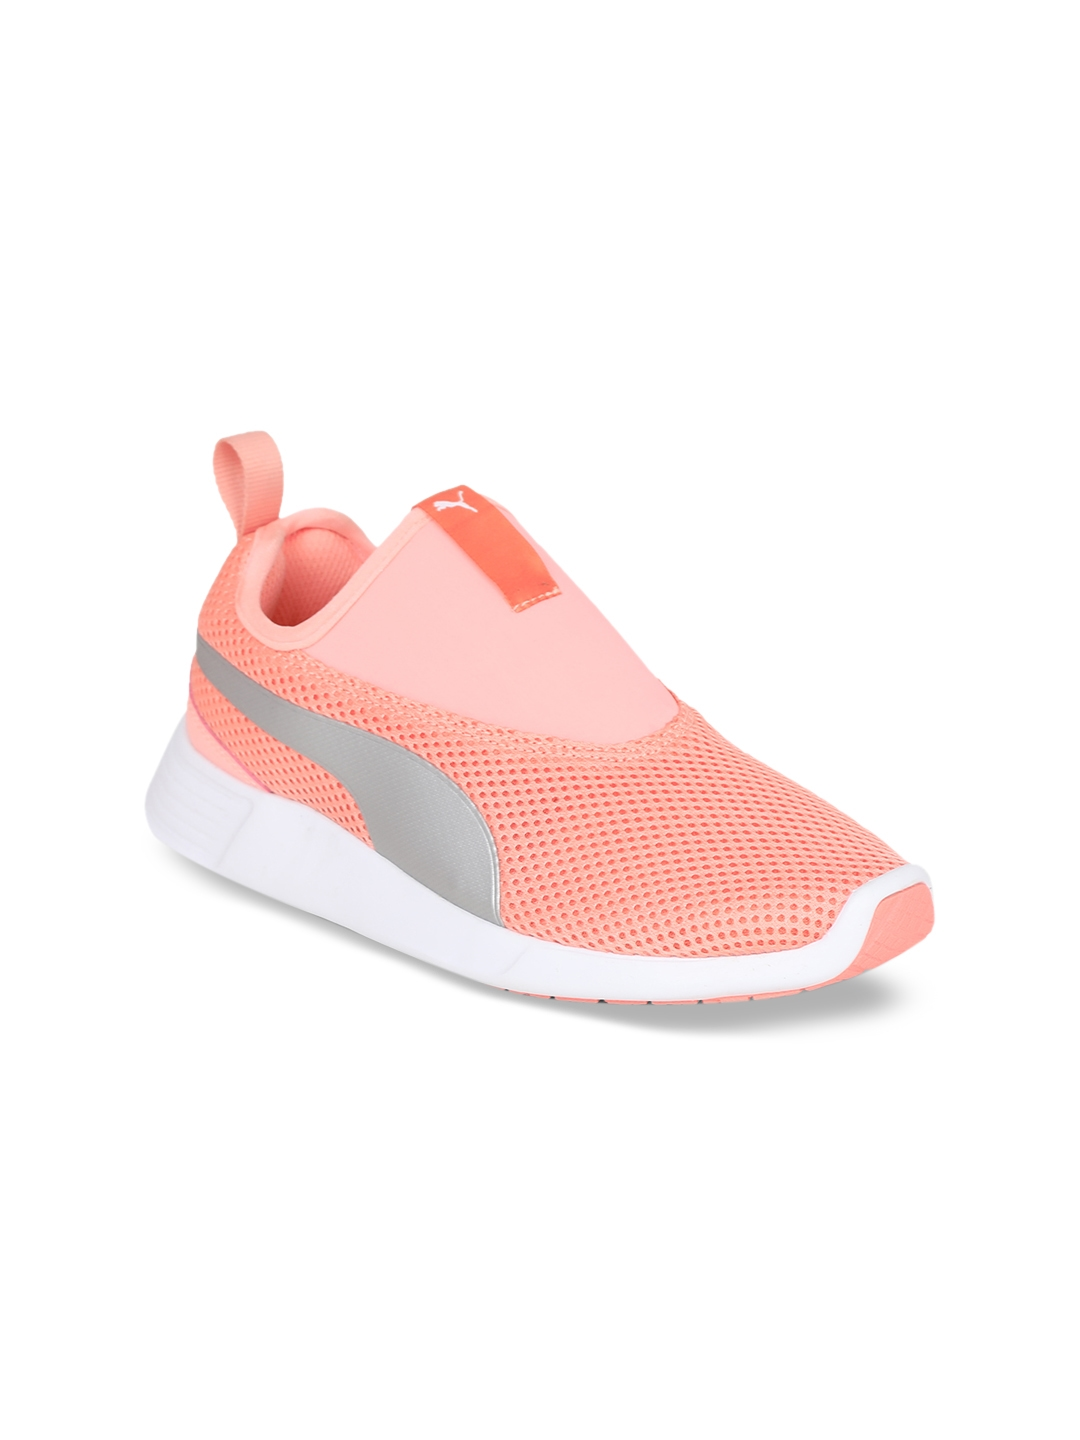 Buy Puma Women Coral Pink ST Trainer Evo Slip On V2 IDP Running ... c232317c91